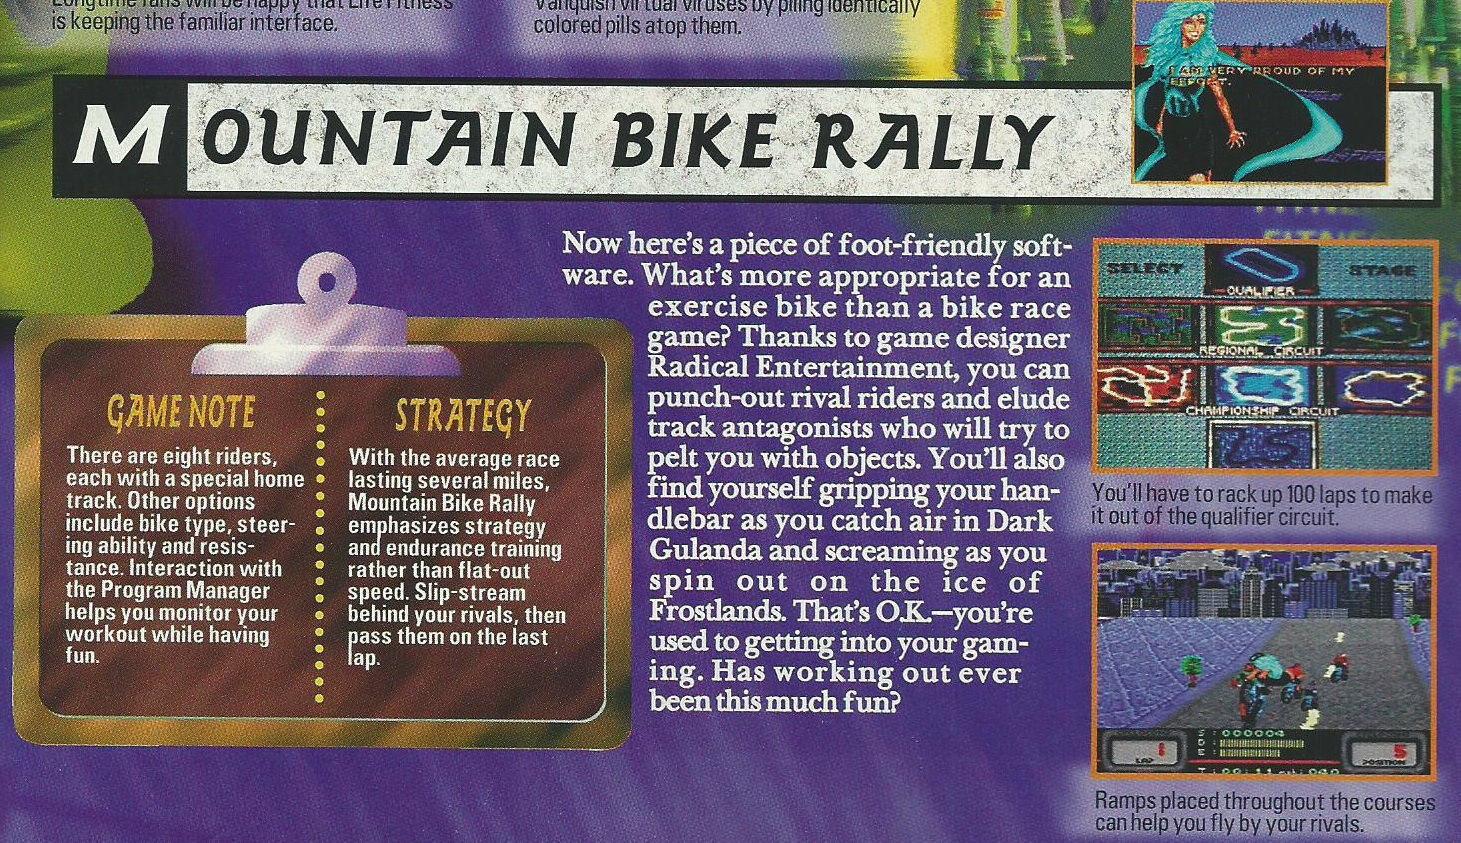 Mountain Bike Rally